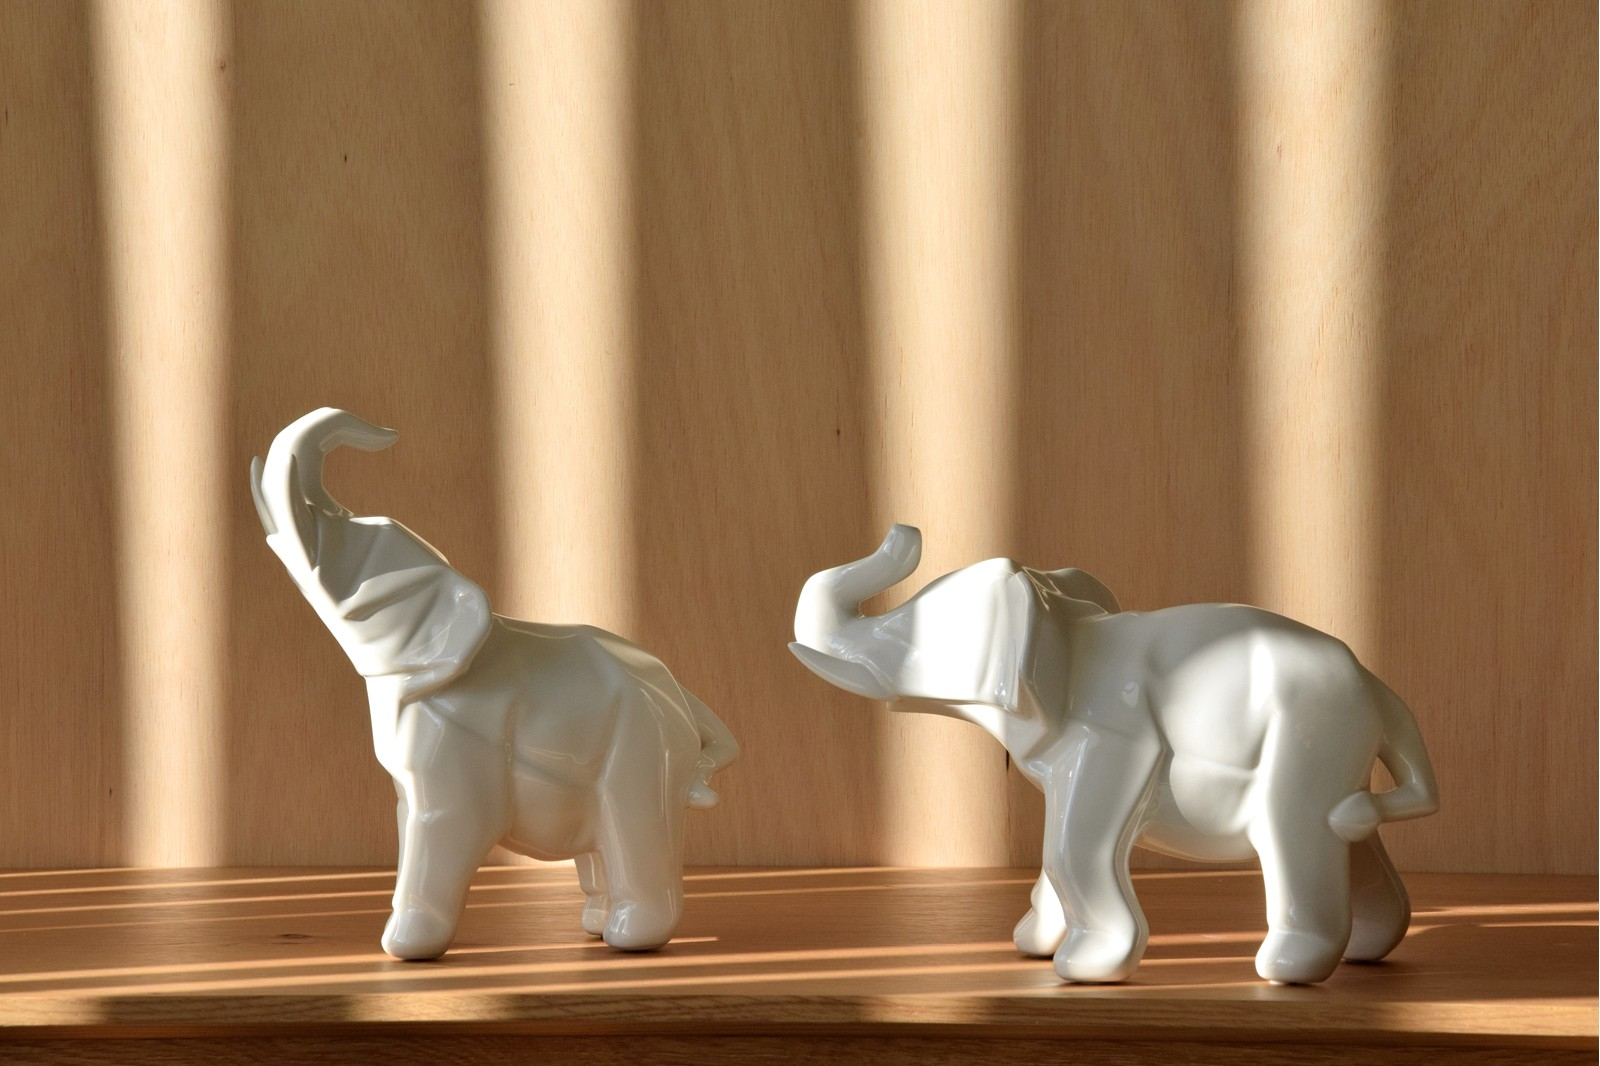 ELEPHANT COLLECTION. WHITE GLOSS CERAMIC SCULPTURE